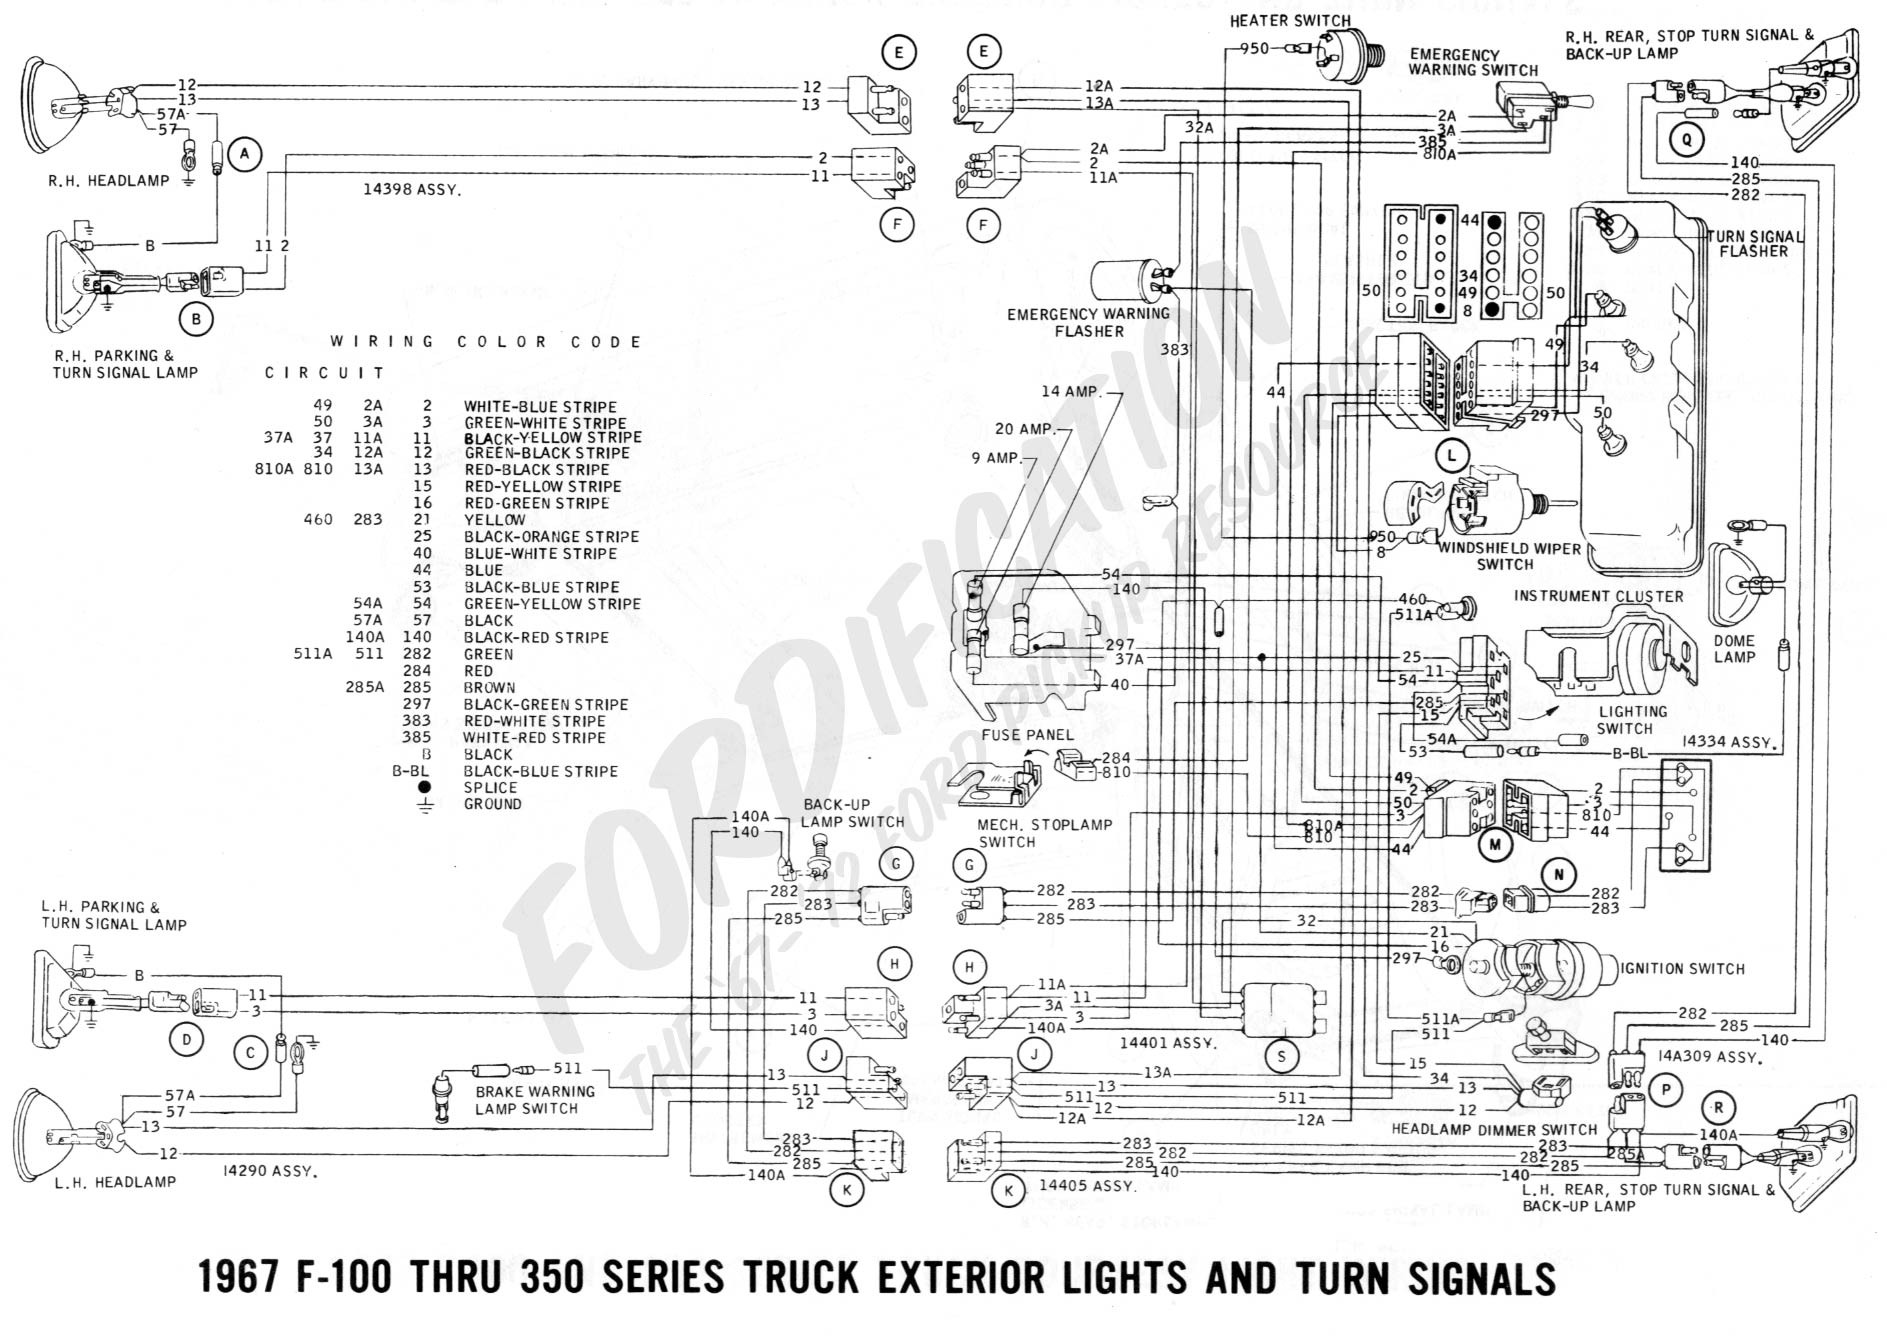 Pontiac Gto Ignition Switch Wiring Diagram on pontiac grand prix wiring diagrams, 1968 gto wiring diagram, 1969 pontiac firebird wiring diagram,